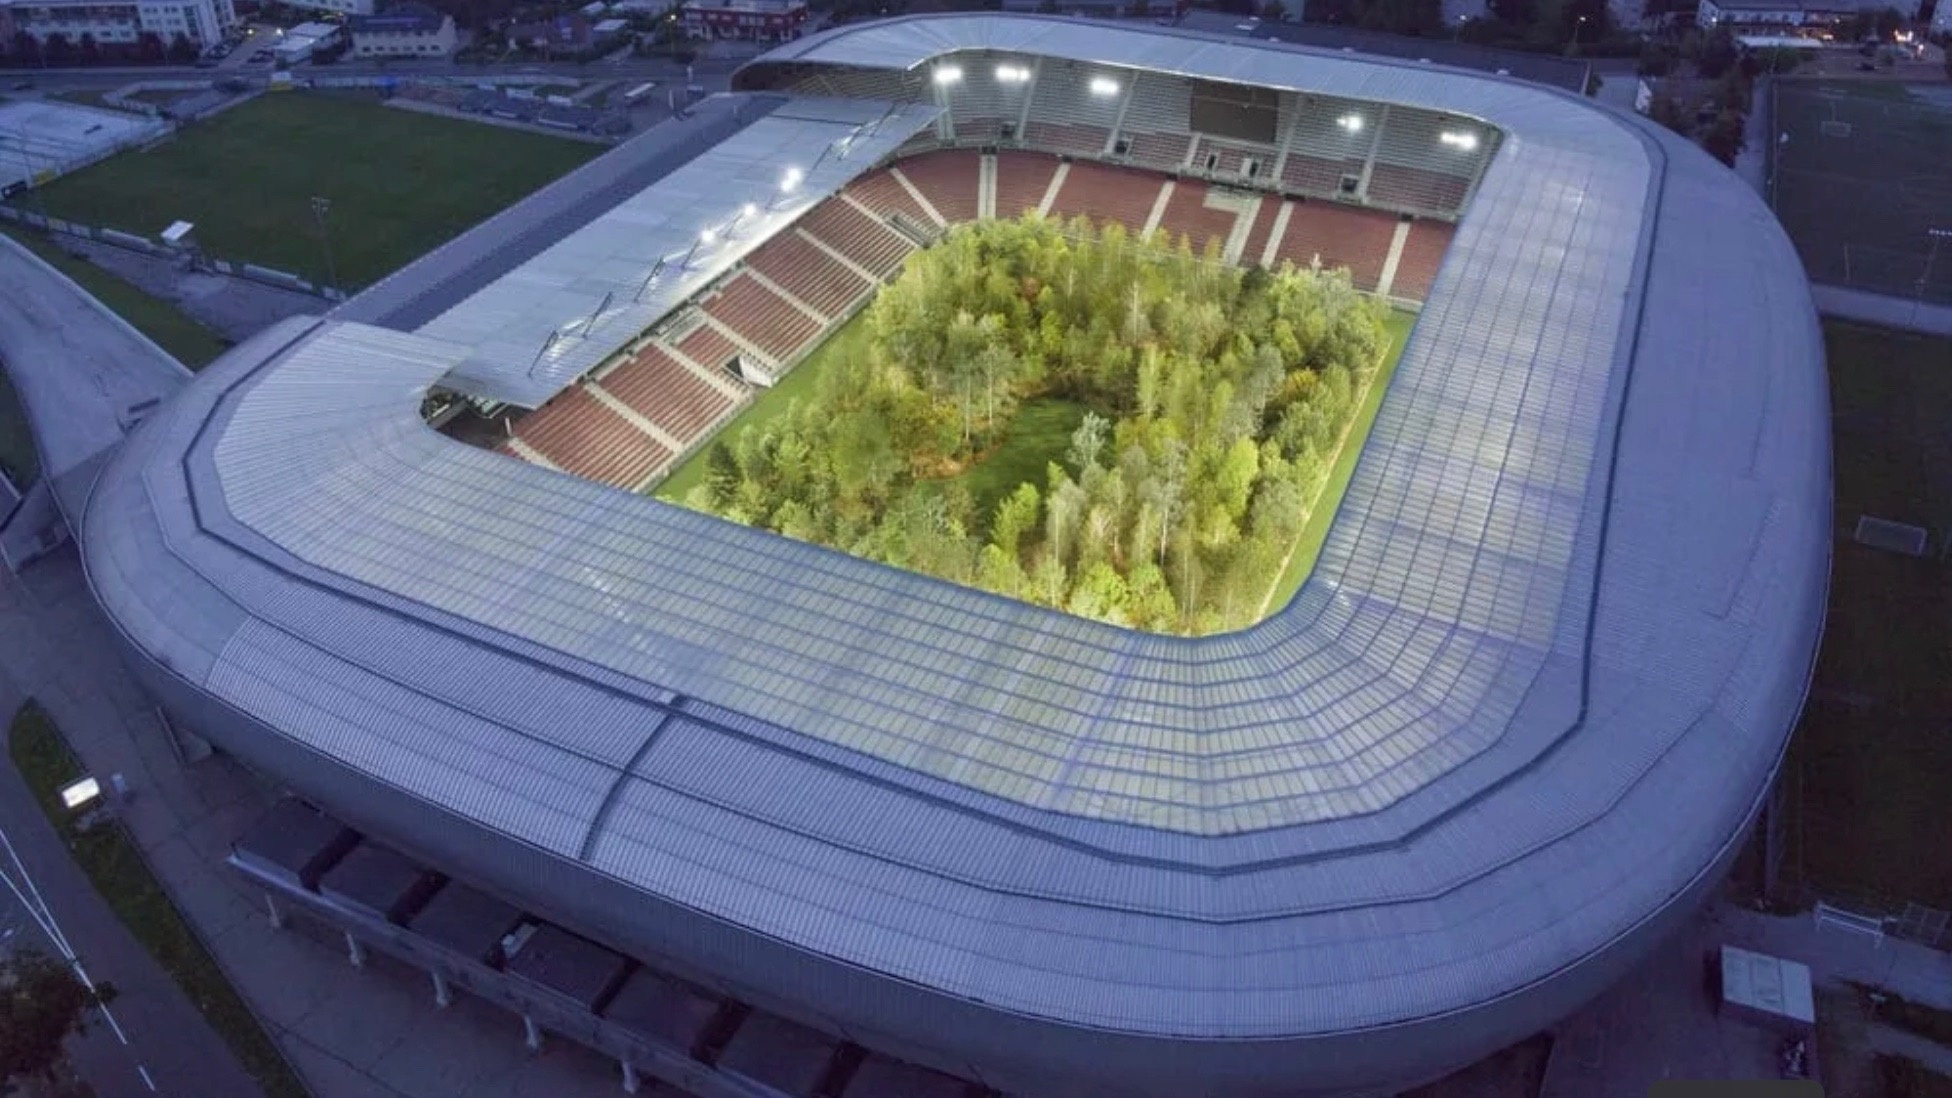 This Football Stadium Was Transformed Into a Living Forest In Dystopian